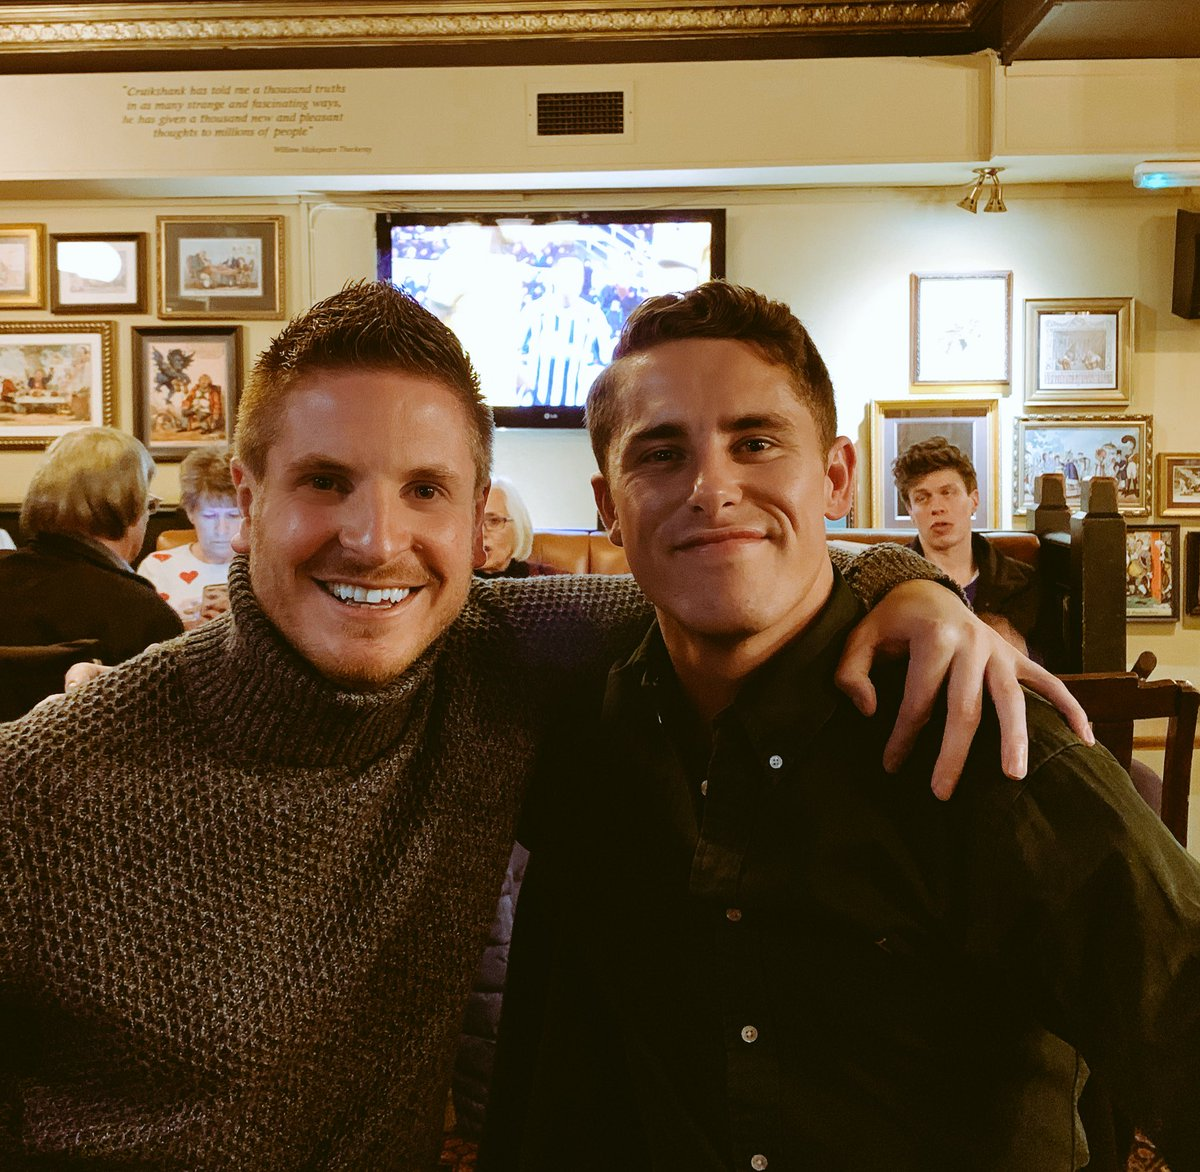 Awesome to catch up with Jack while he is over from Australia! @dallascup referees reunited again! Great lad and top referee. #referee #football #ally #lgbt #RainbowLaces